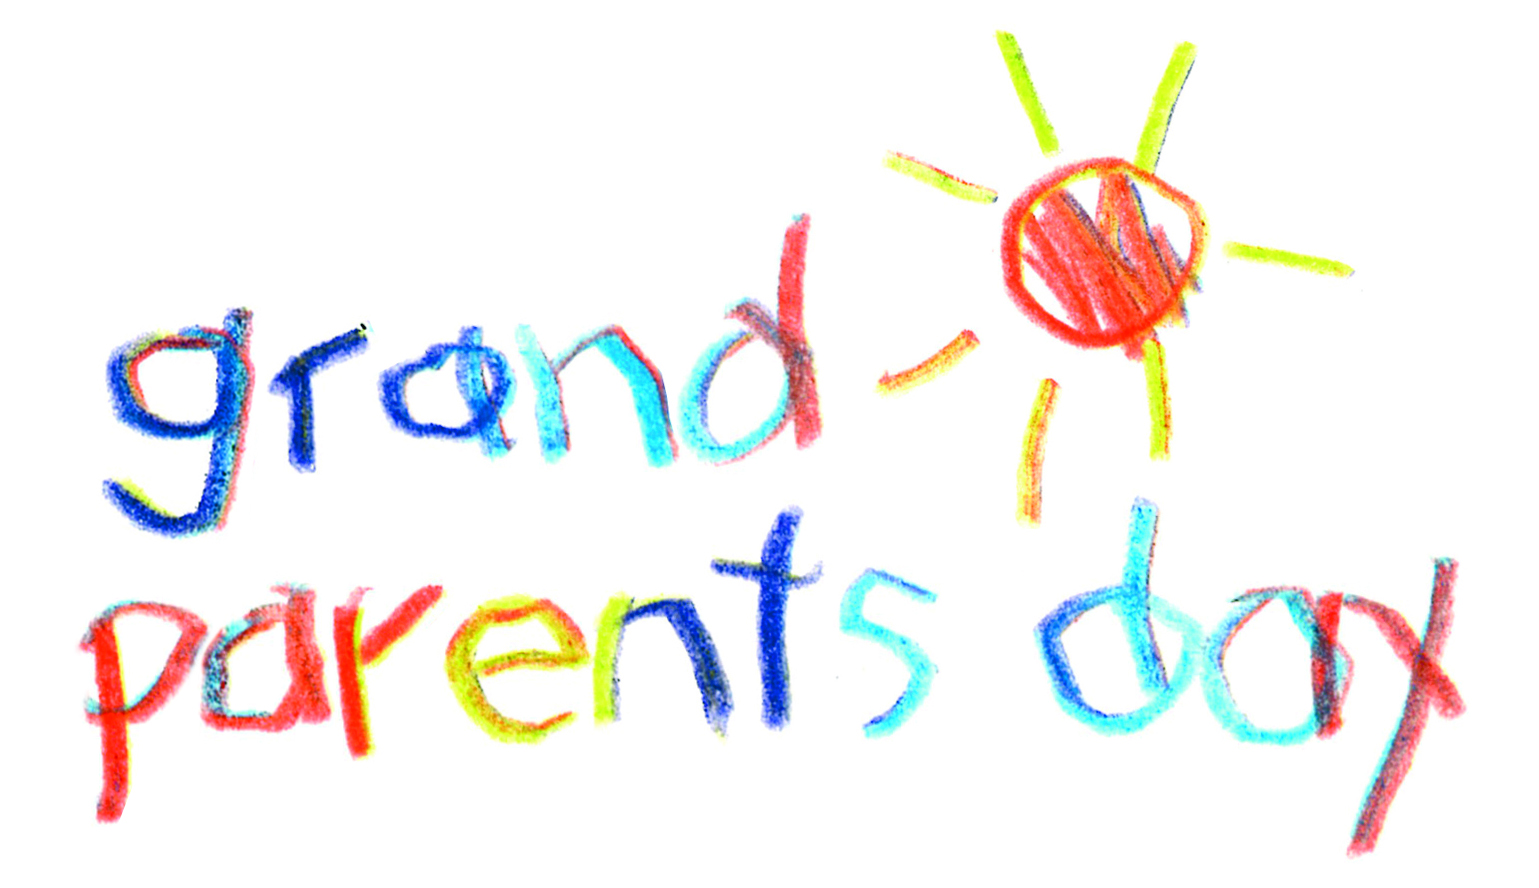 grandparentsday_logo_2B336.jpg (1539×888)